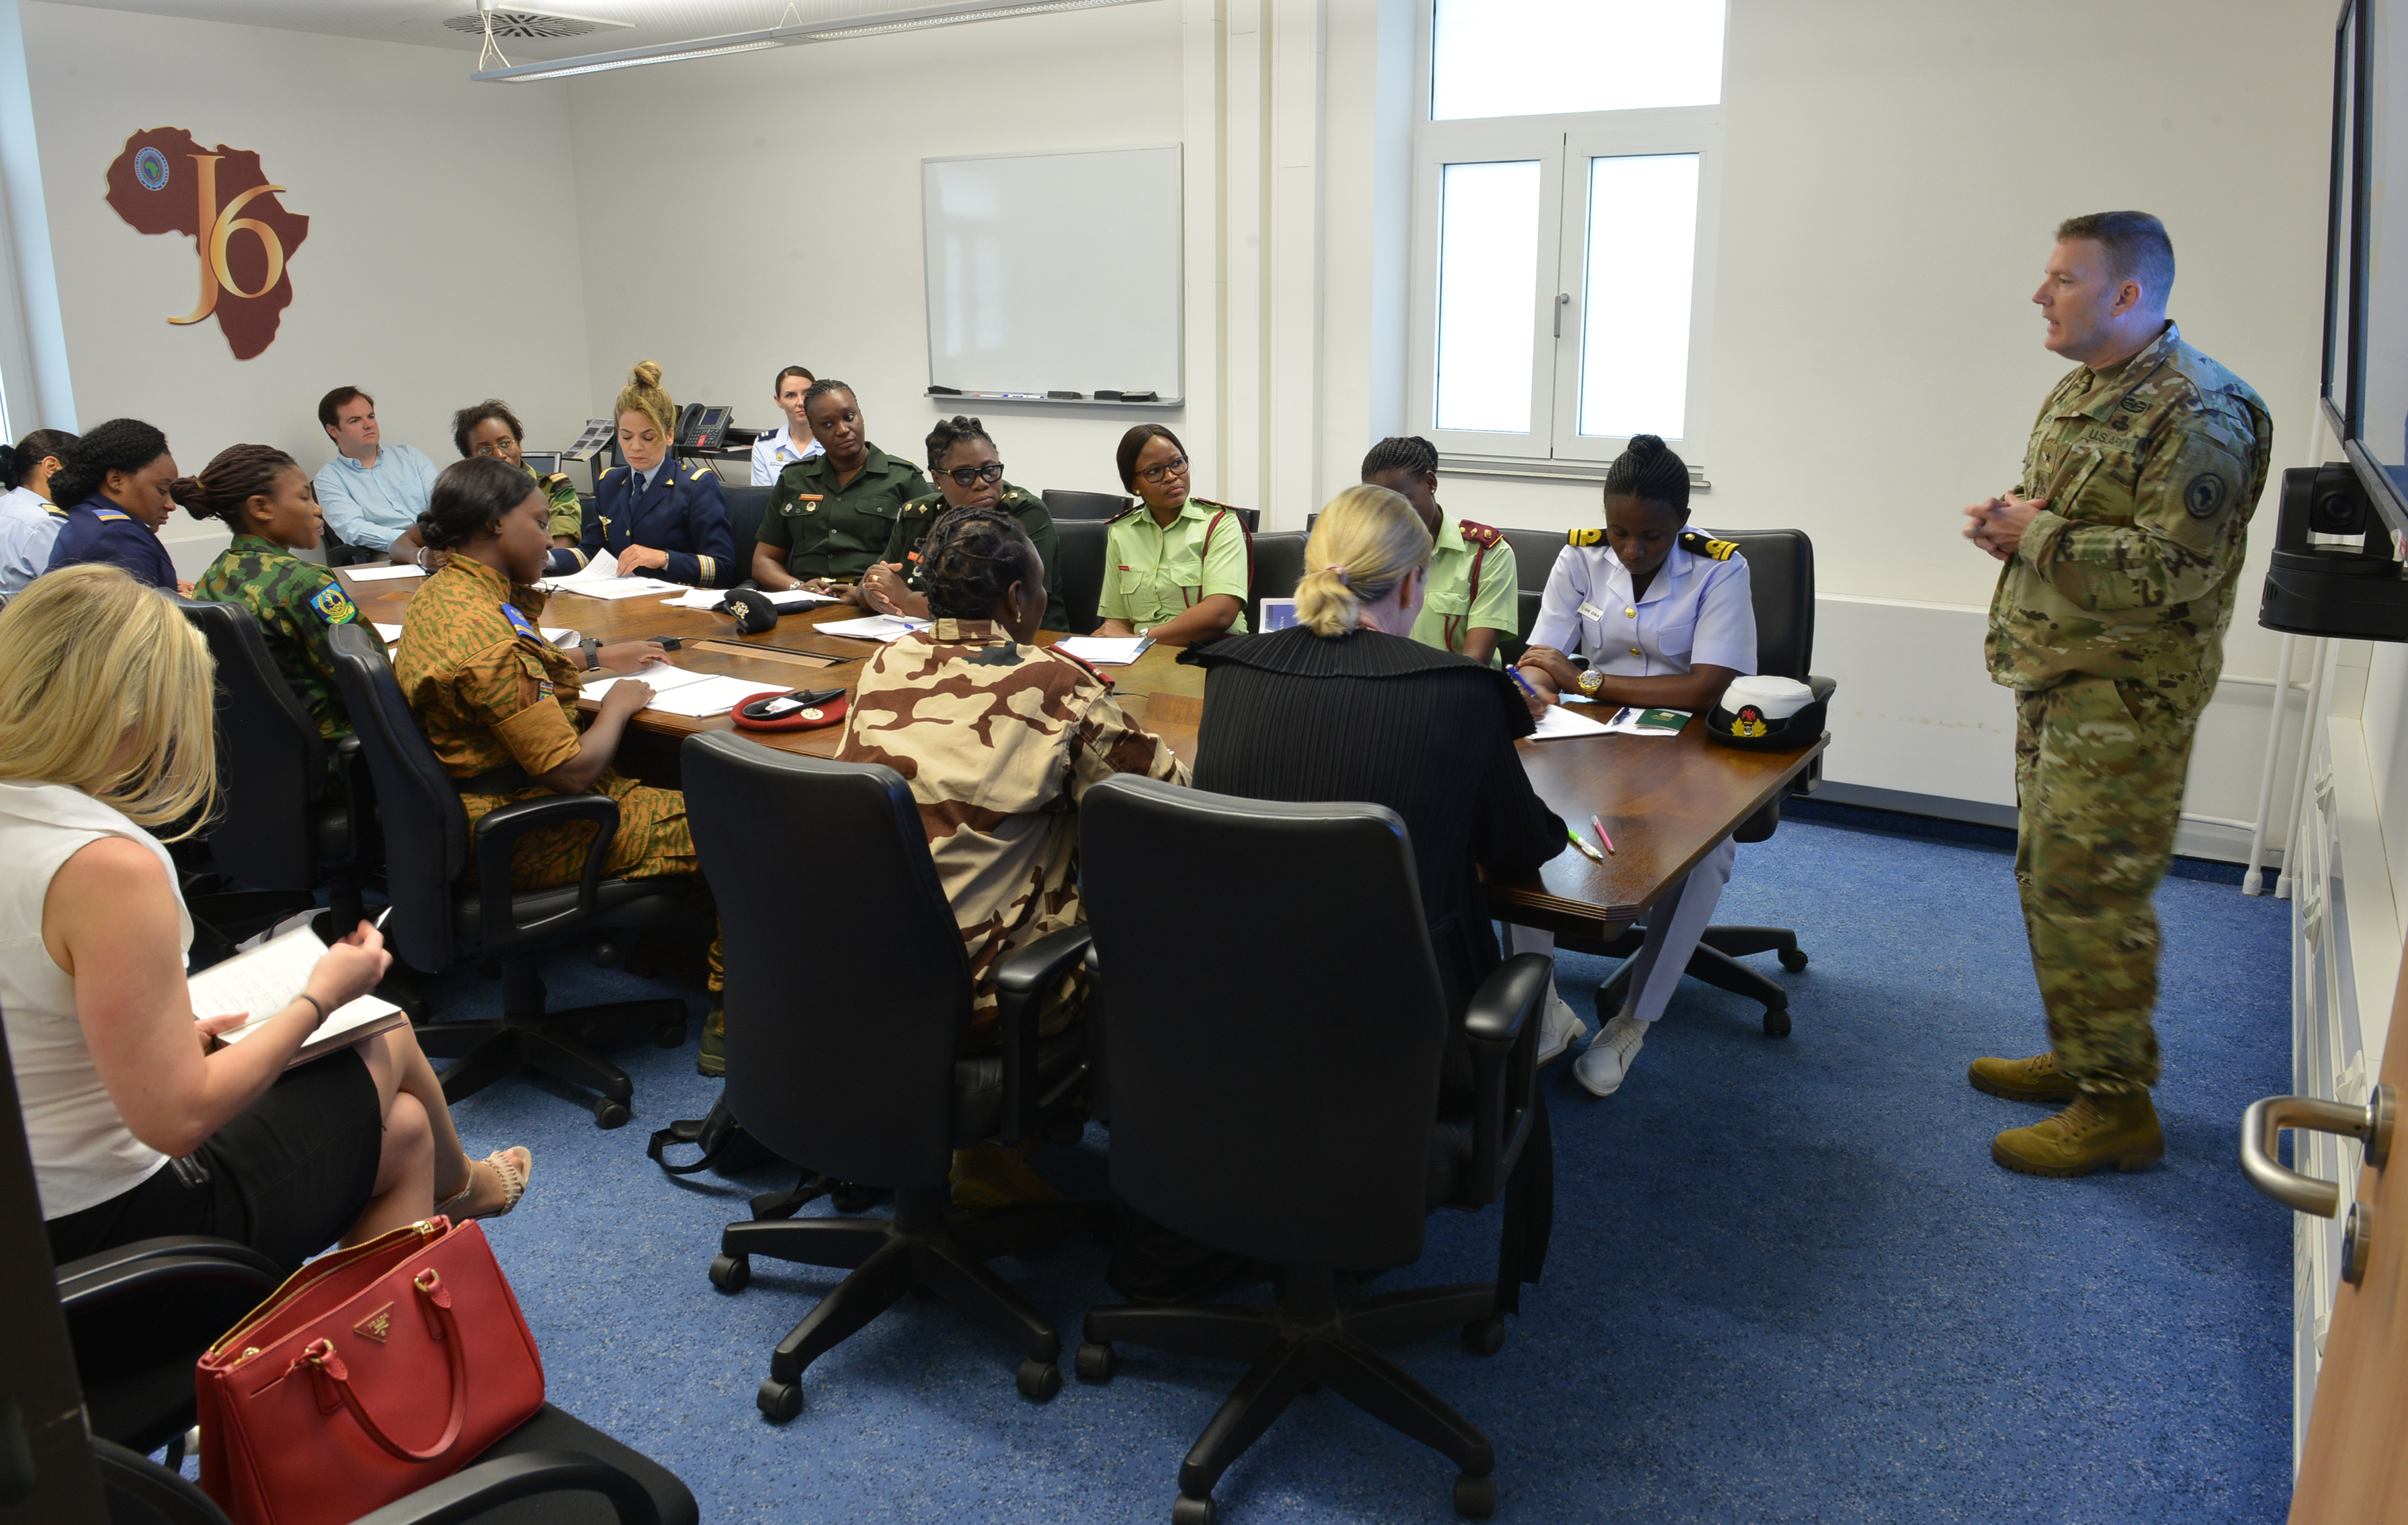 STUTTGART, Germany – Brig. Gen. Christopher Eubank, director, Directorate of Command, Control, Communications and Computer Systems (C4)/ J6, U.S. Africa Command speaks to attendees of the AFRICOM Women's Communication Symposium – 2018, at AFRICOM Headquarters, Kelly Barracks, June 25, 2018. The event hosted delegation of 14 women military signal communicators from African partner nations, under the command's Women's Military-to-Military Engagement Program. (Photo by Army Staff Sgt. Grady Jones, AFRICOM Public Affairs)